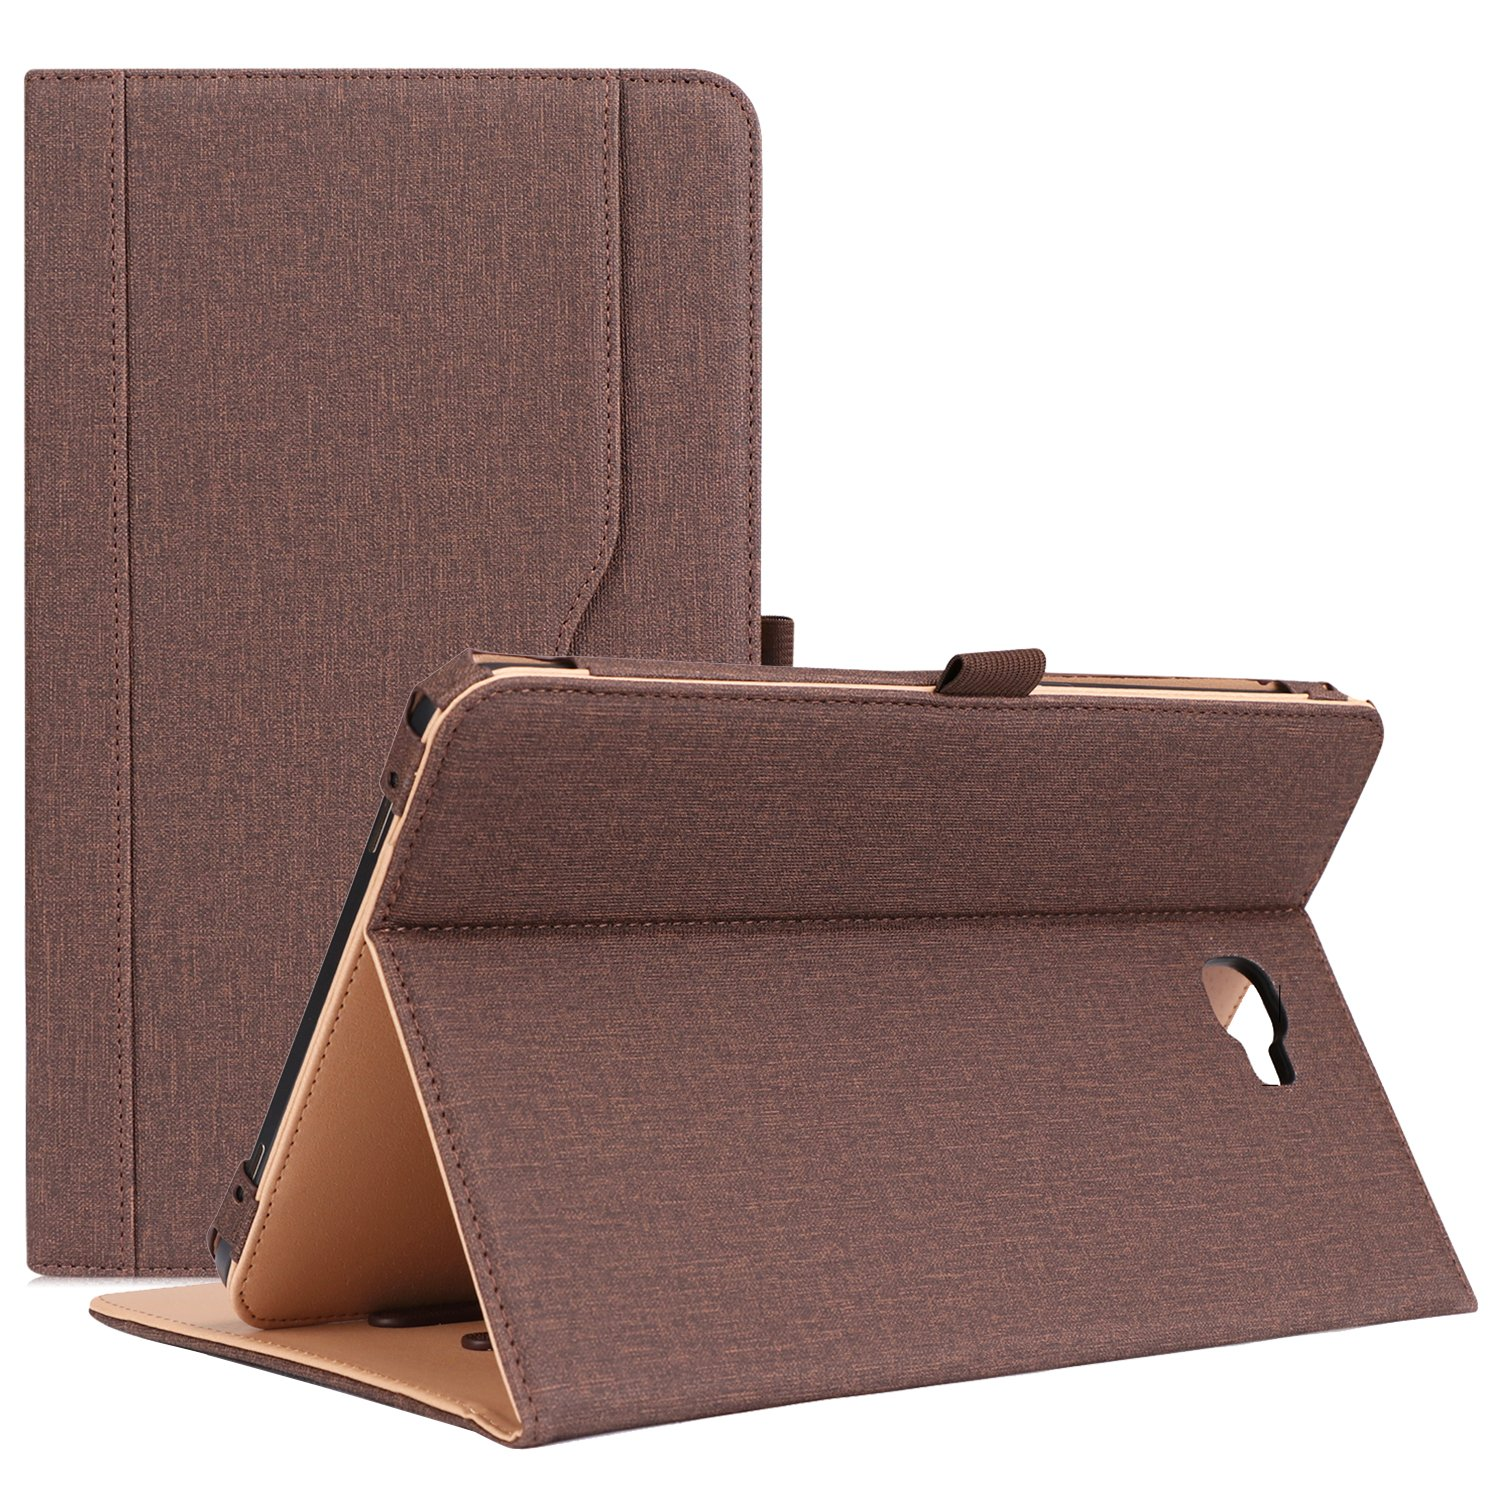 """ProCase Galaxy Tab A 10.1 Case 2016 Old Model, Stand Folio Case Cover for Galaxy Tab A 10.1"""" Tablet SM-T580 T585 T587 (NO S Pen Version) with Multiple Viewing Angles, Card Pocket -Chocolate"""